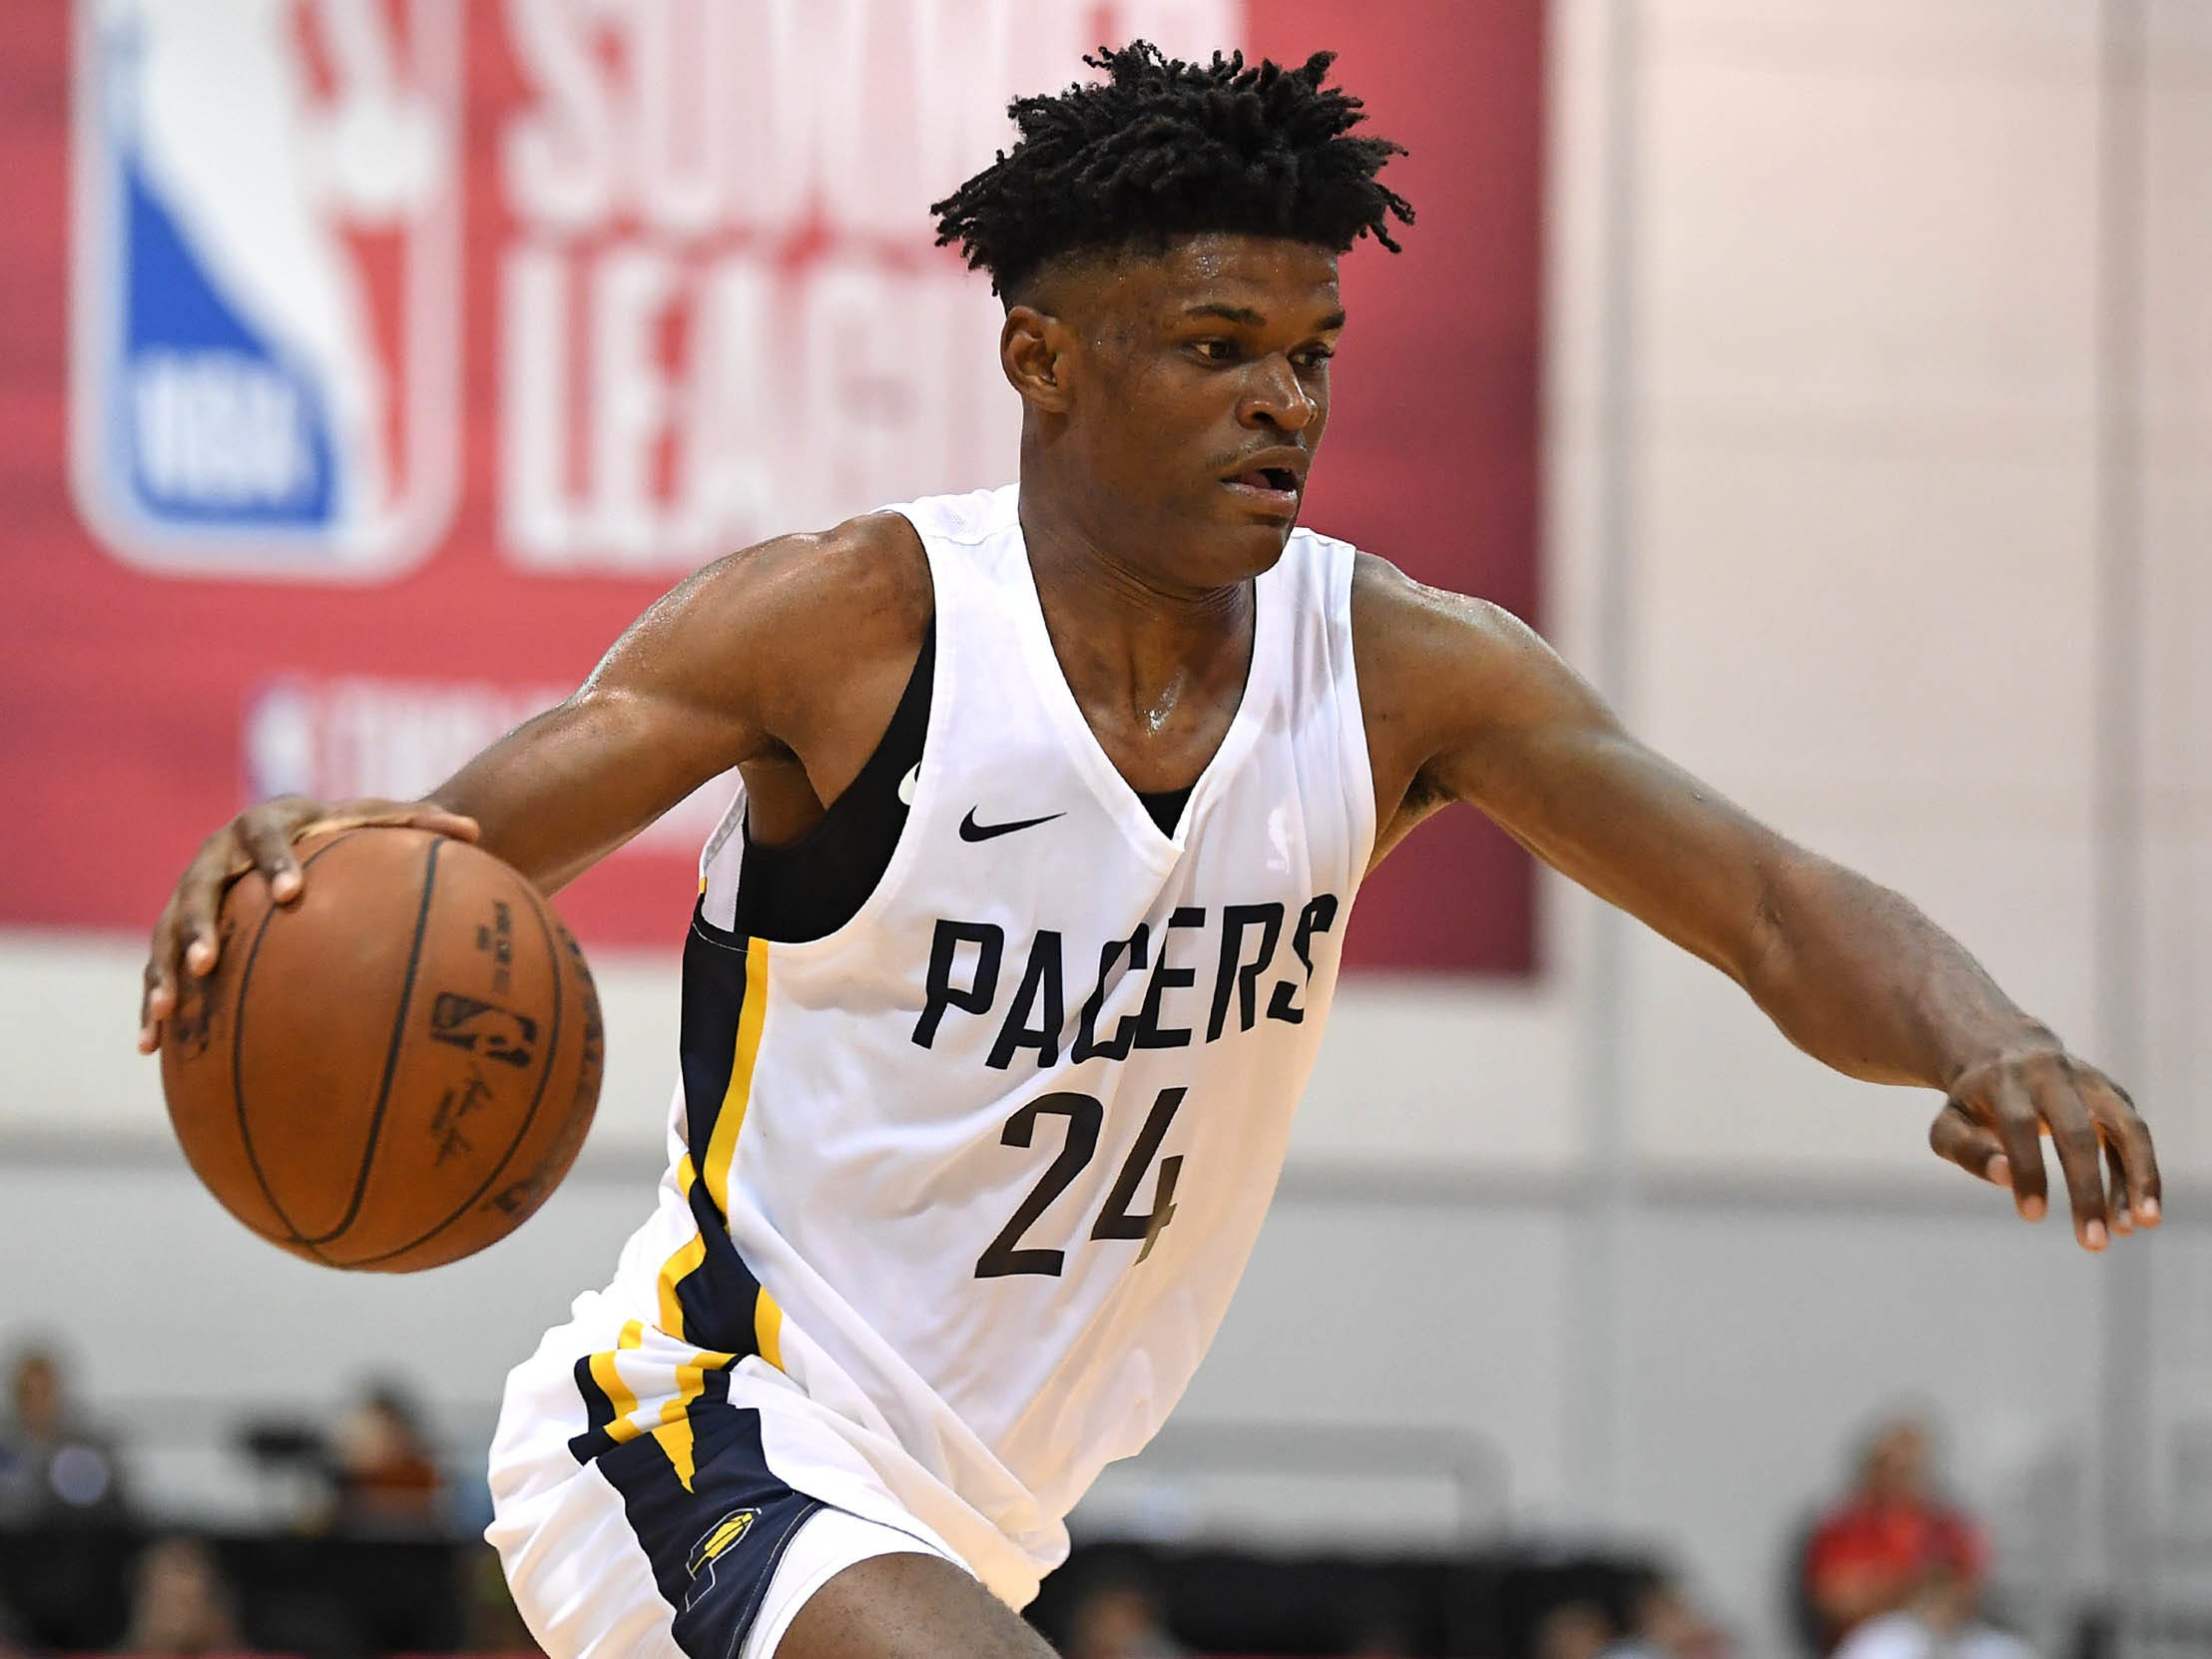 June 21: MSU's Alize Johnson is drafted by the Pacers.